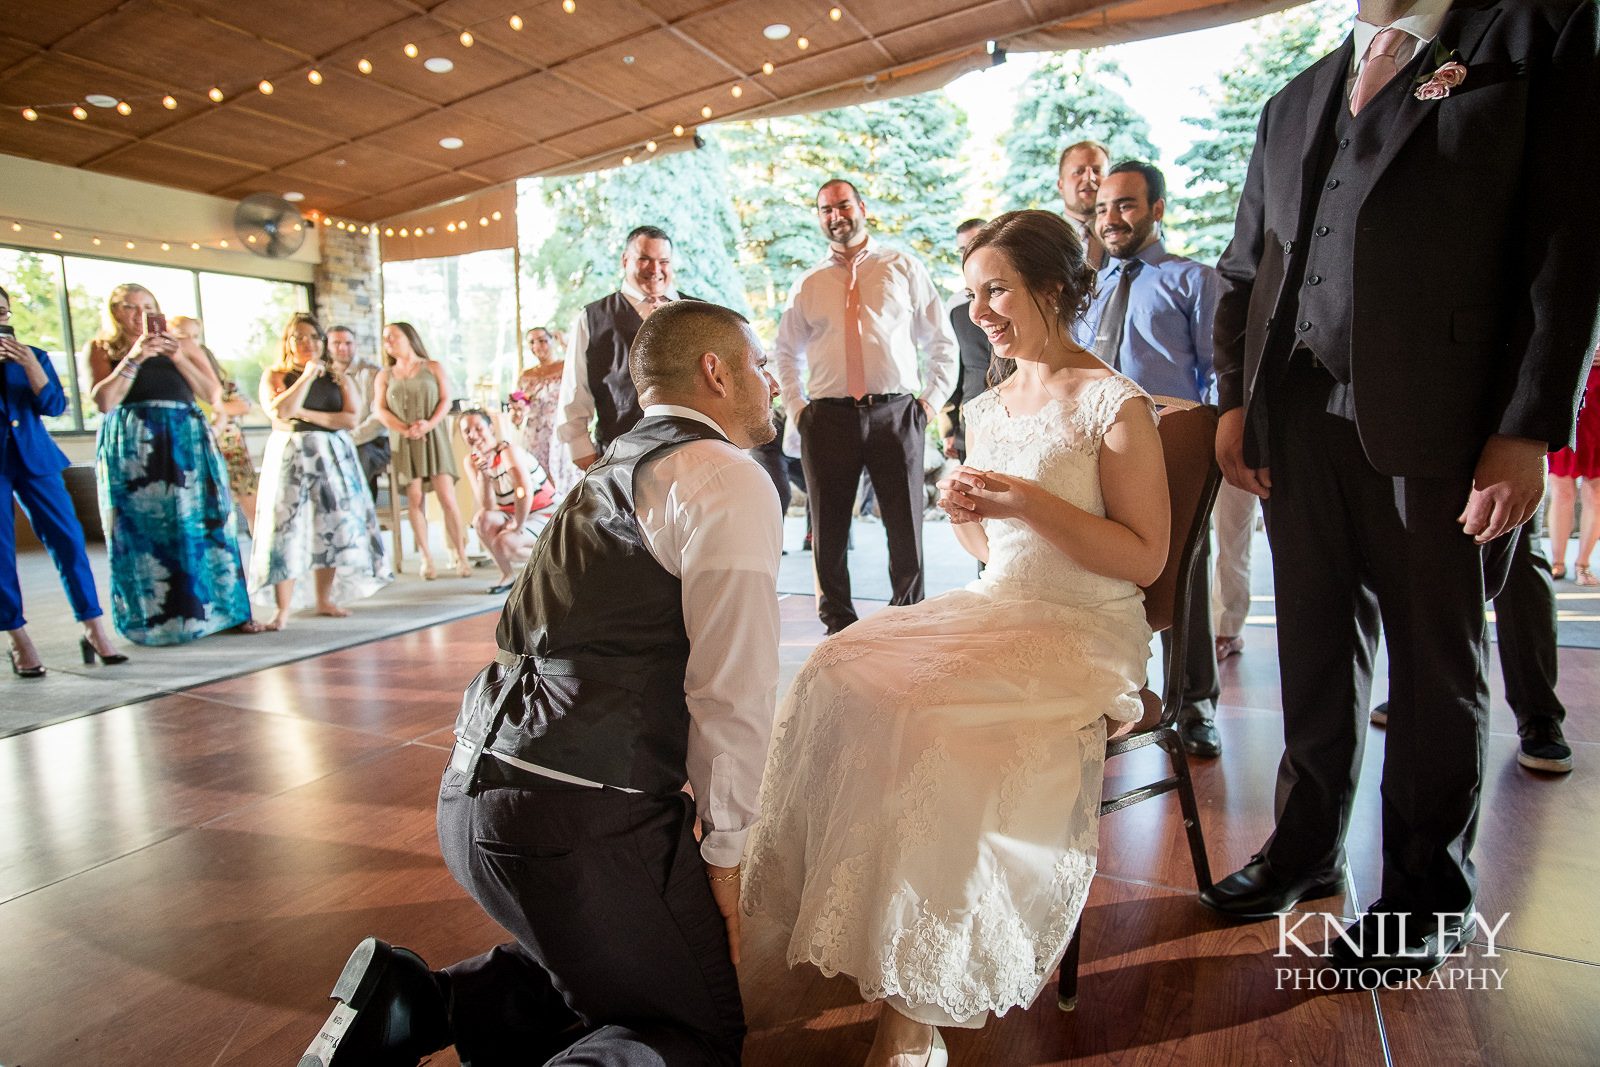 130 - Ravenwood Golf Club wedding pictures - Rochester NY - Kniley Photography - XT2B2072.jpg